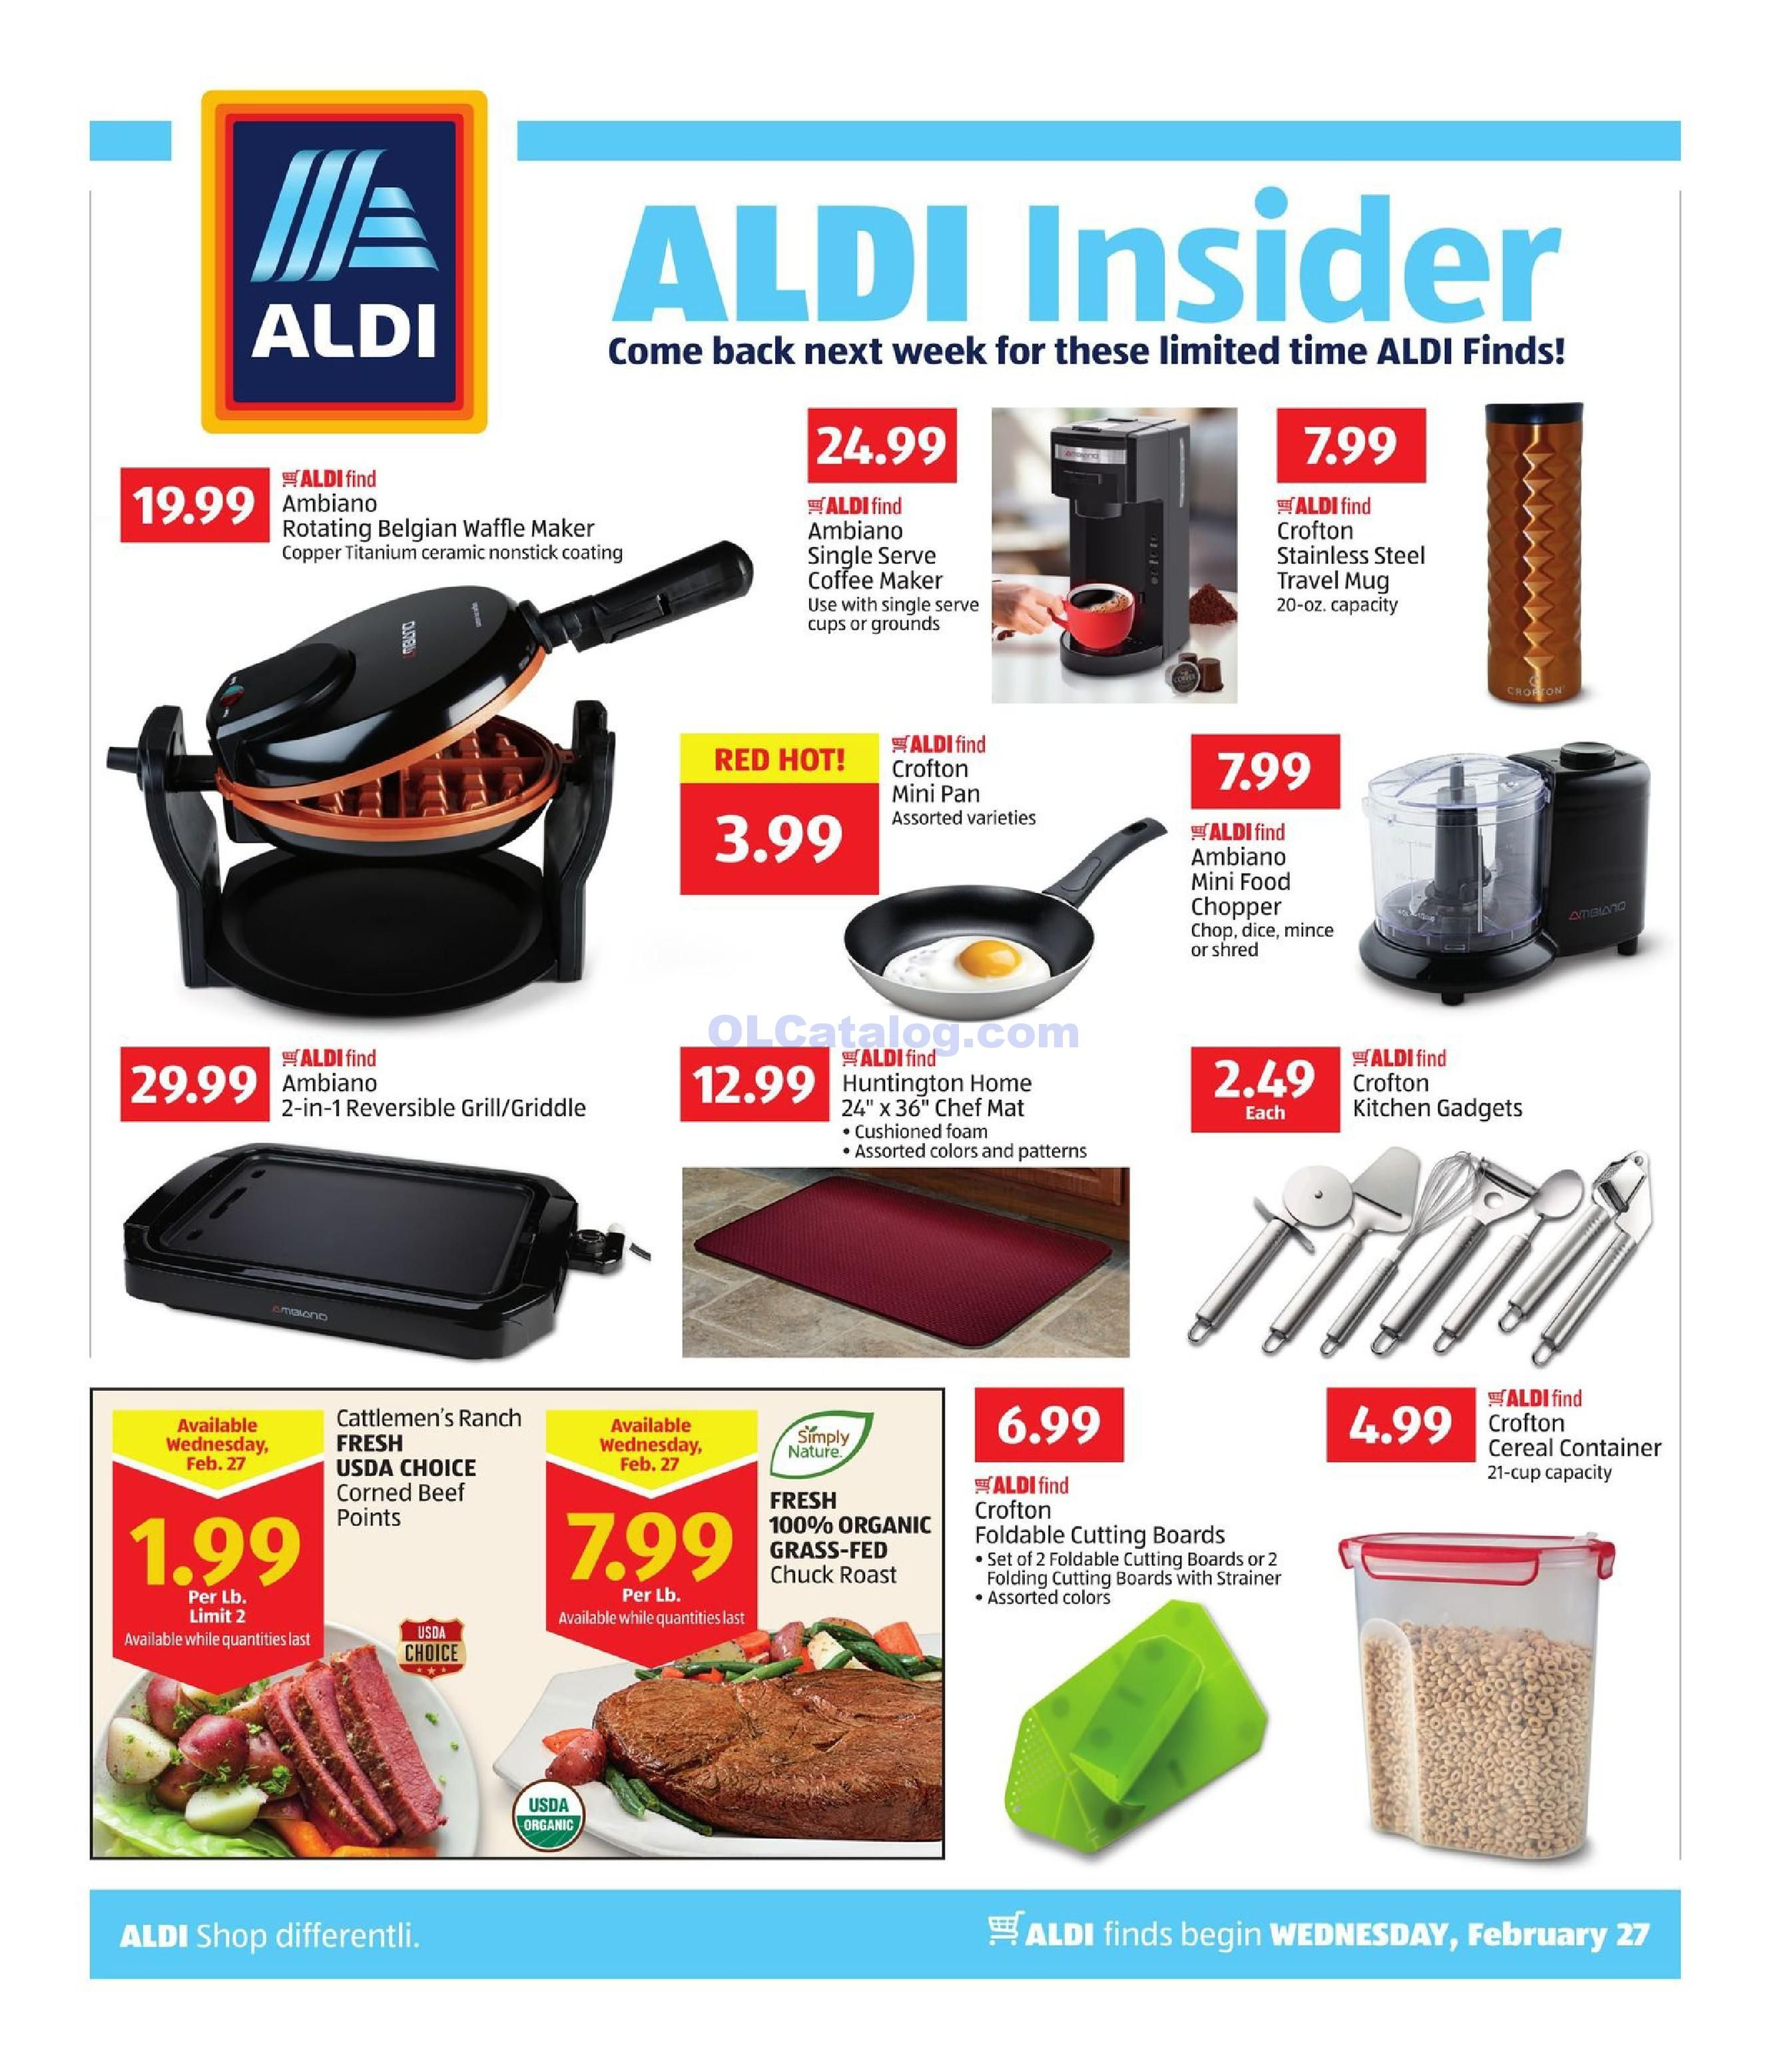 Aldi Weekly Ad February 27 March 5 2019 View The Latest Aldi Flyer And Weekly Circular Ad For Aldi Here Likewise You Can F Aldi Weekly Ads Grocery Savings